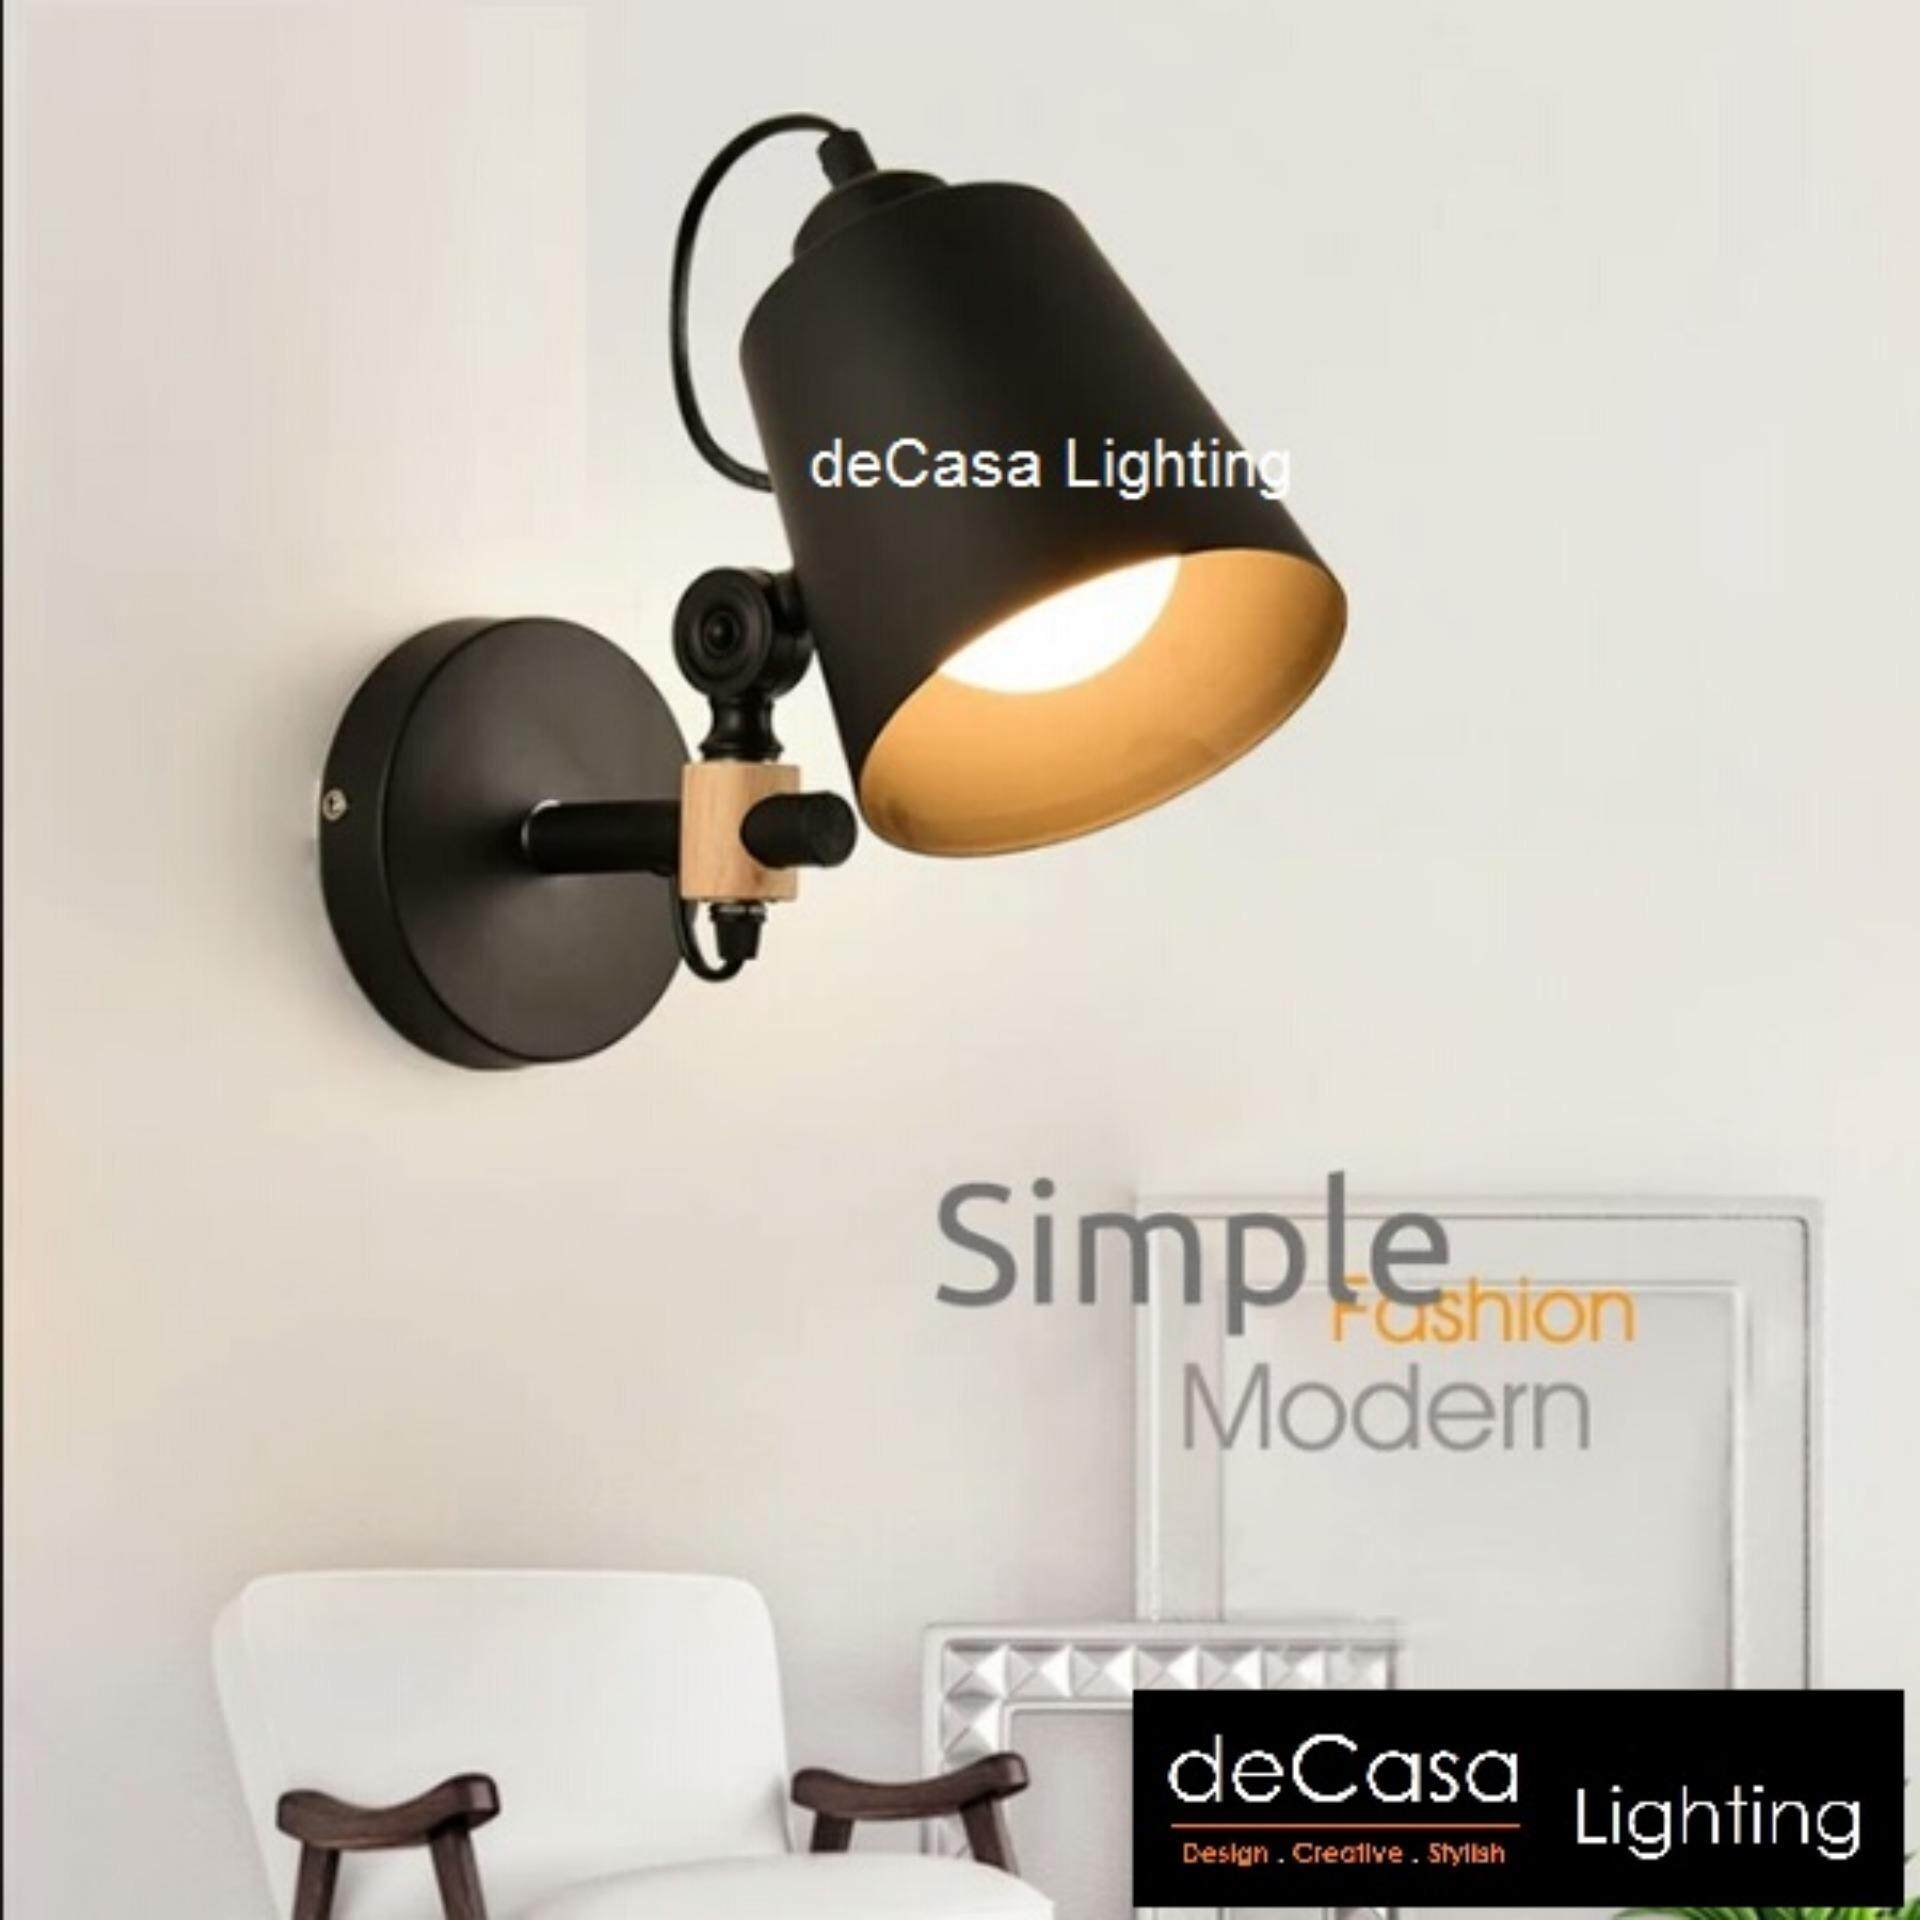 Best Seller Modern Wall Light Adjustable Swing Arm Wall Lights Decasa Lighting Wall Lamp (NSB-OS-2222-1W)